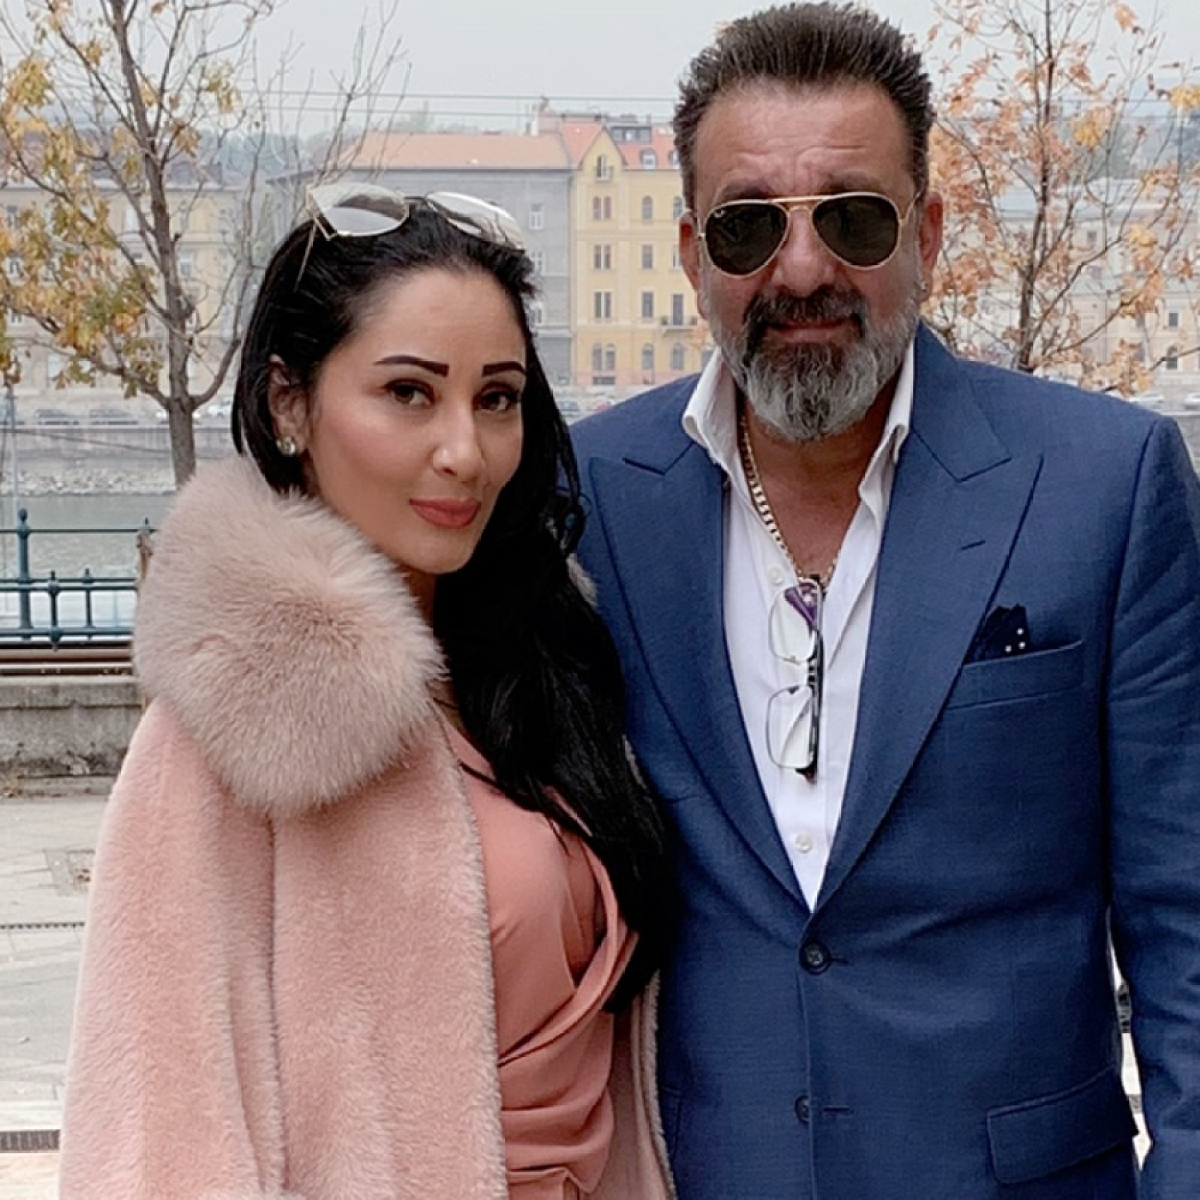 'This too shall pass': Maanayata requests Sanjay Dutt's fans to not fall prey to unwarranted rumours